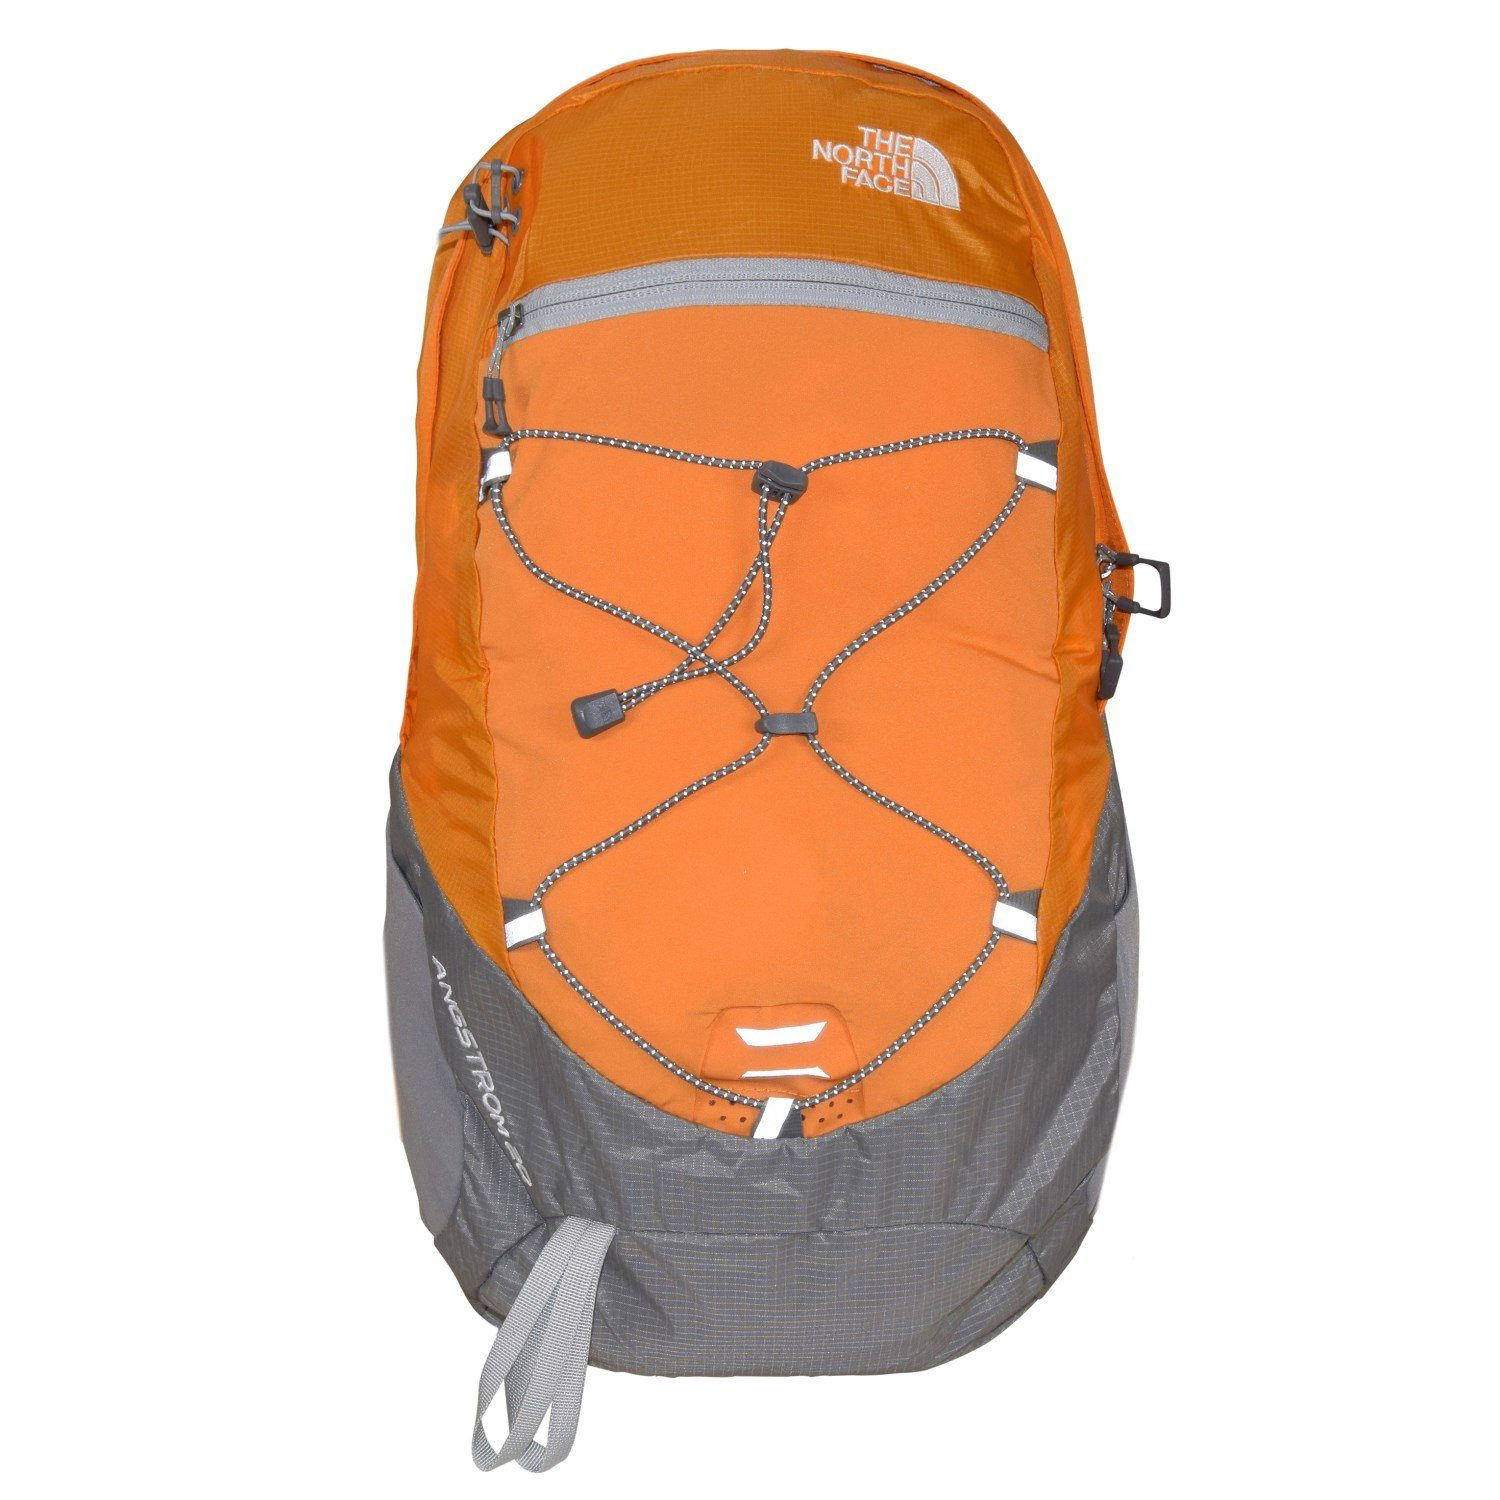 The North Face Outdoor Angstrom 20 Rucksack 49 cm